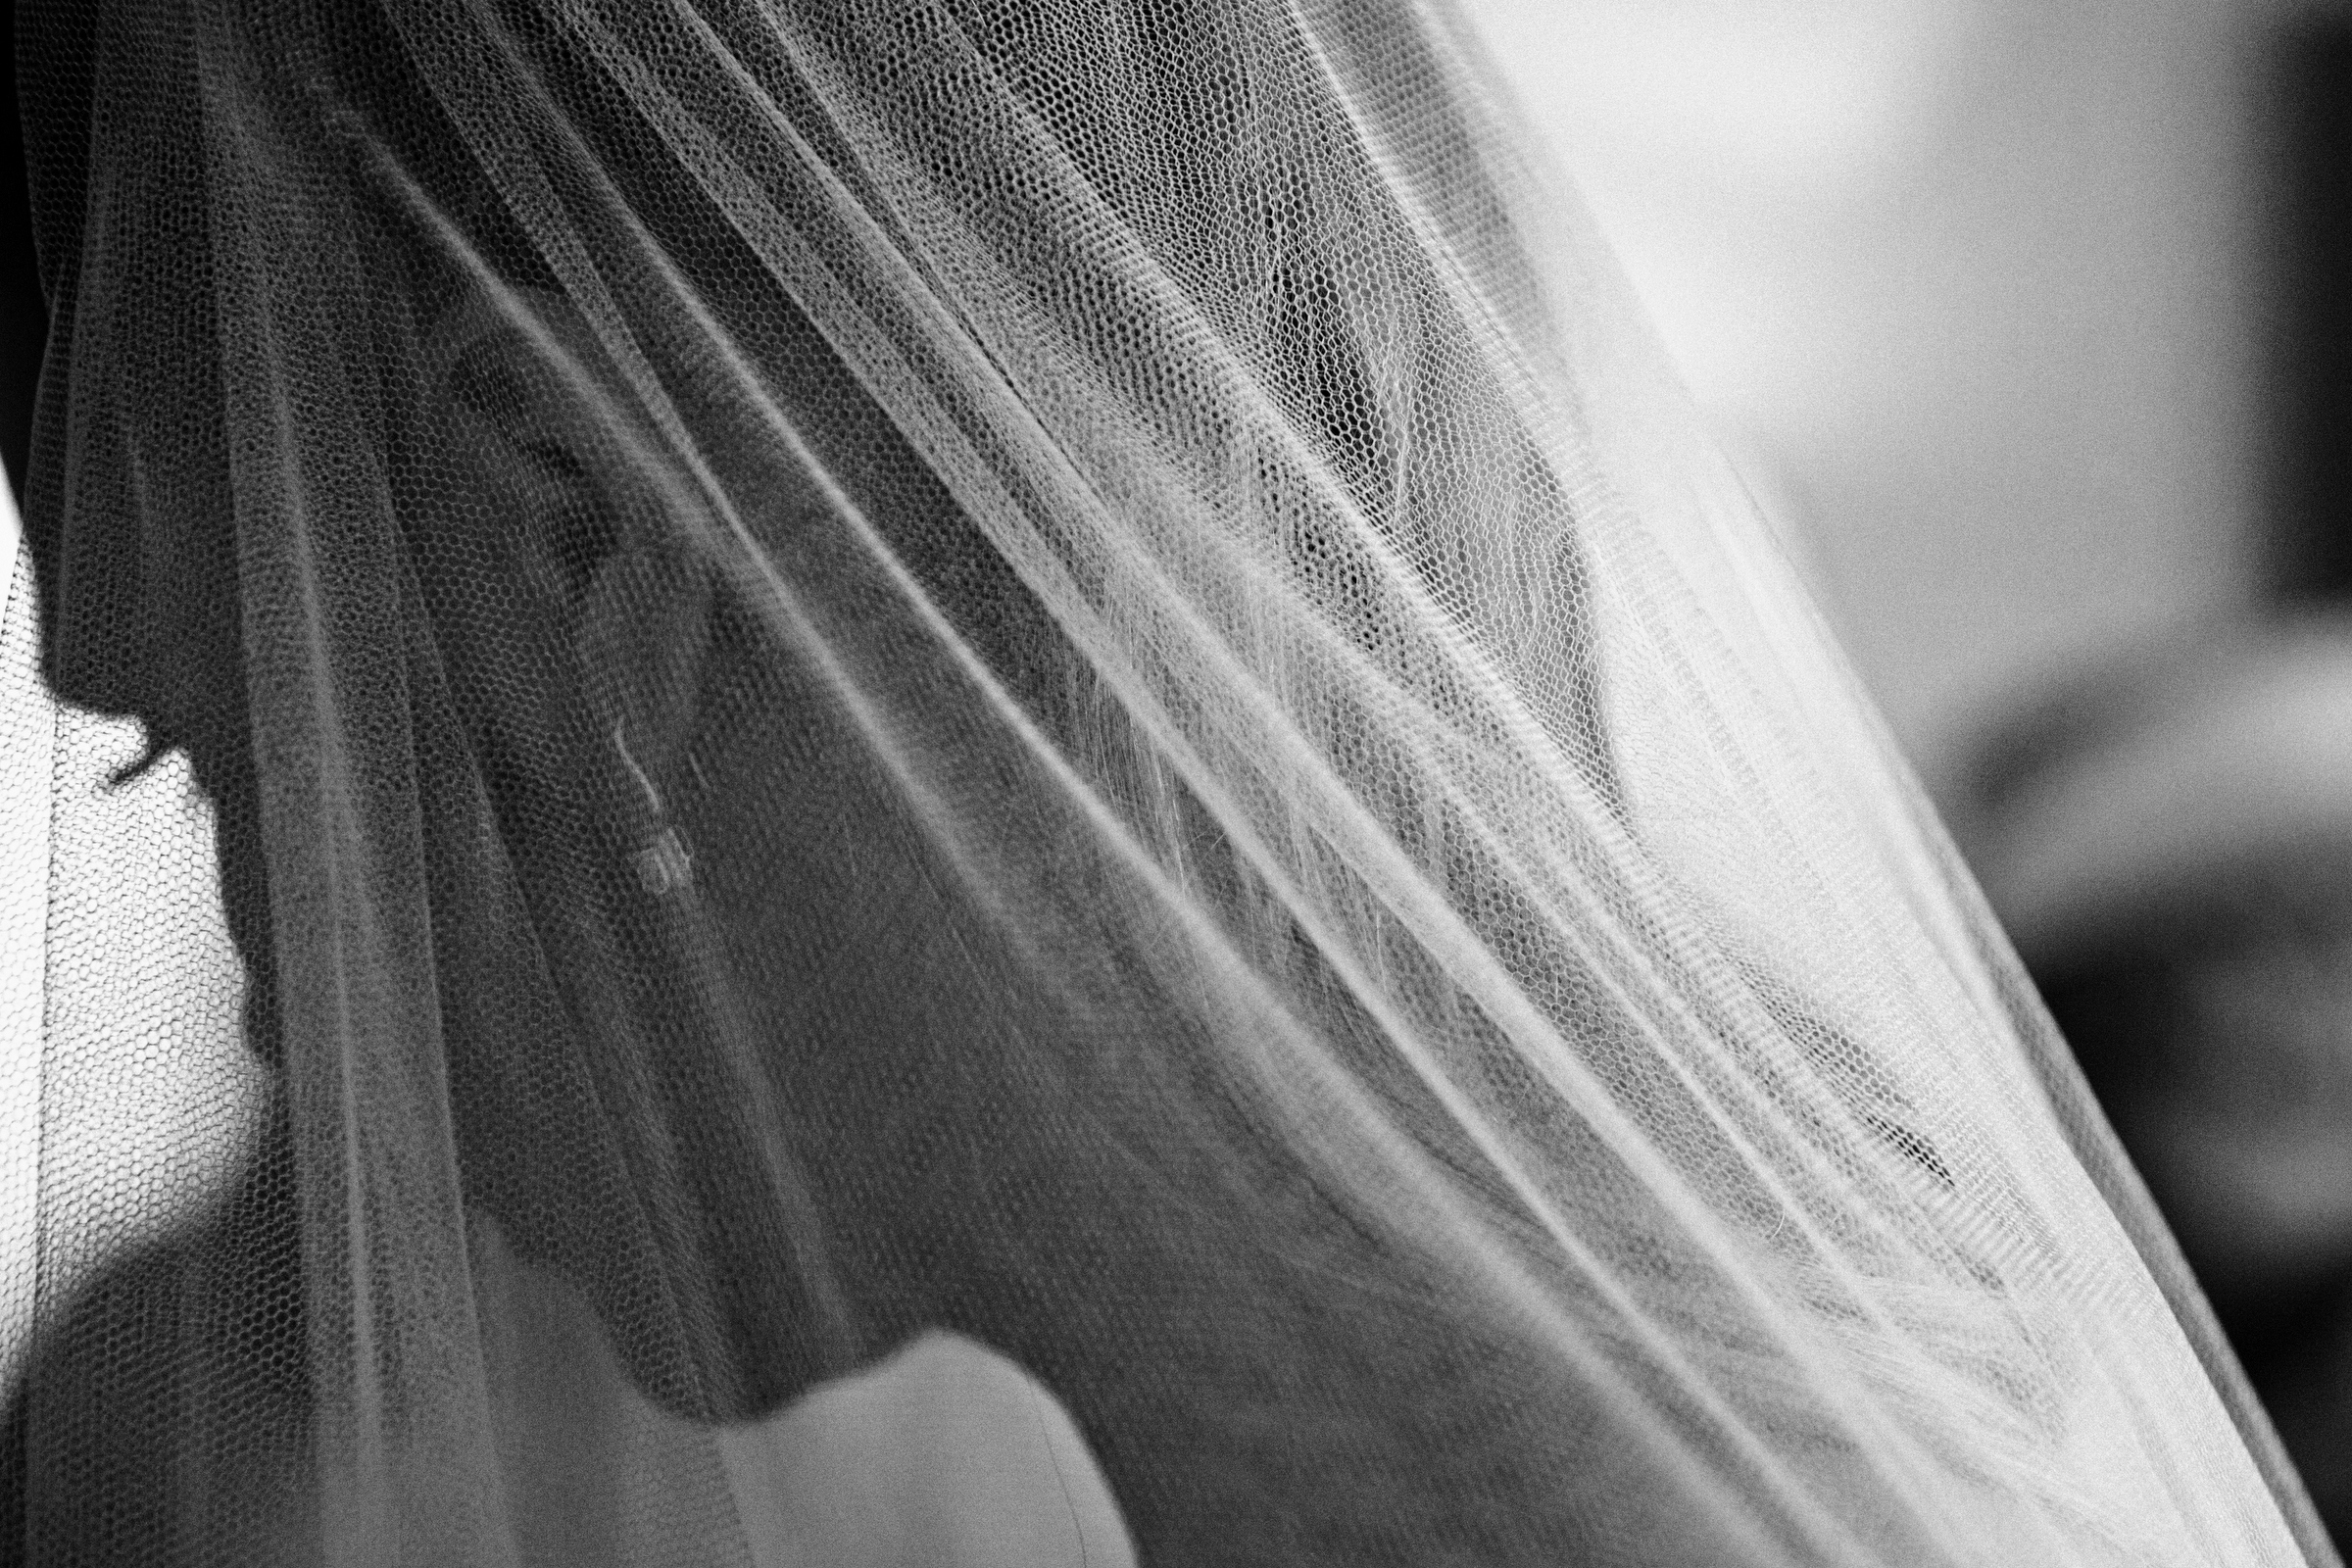 Moody portrait of bride in veil by Jeff Ascough